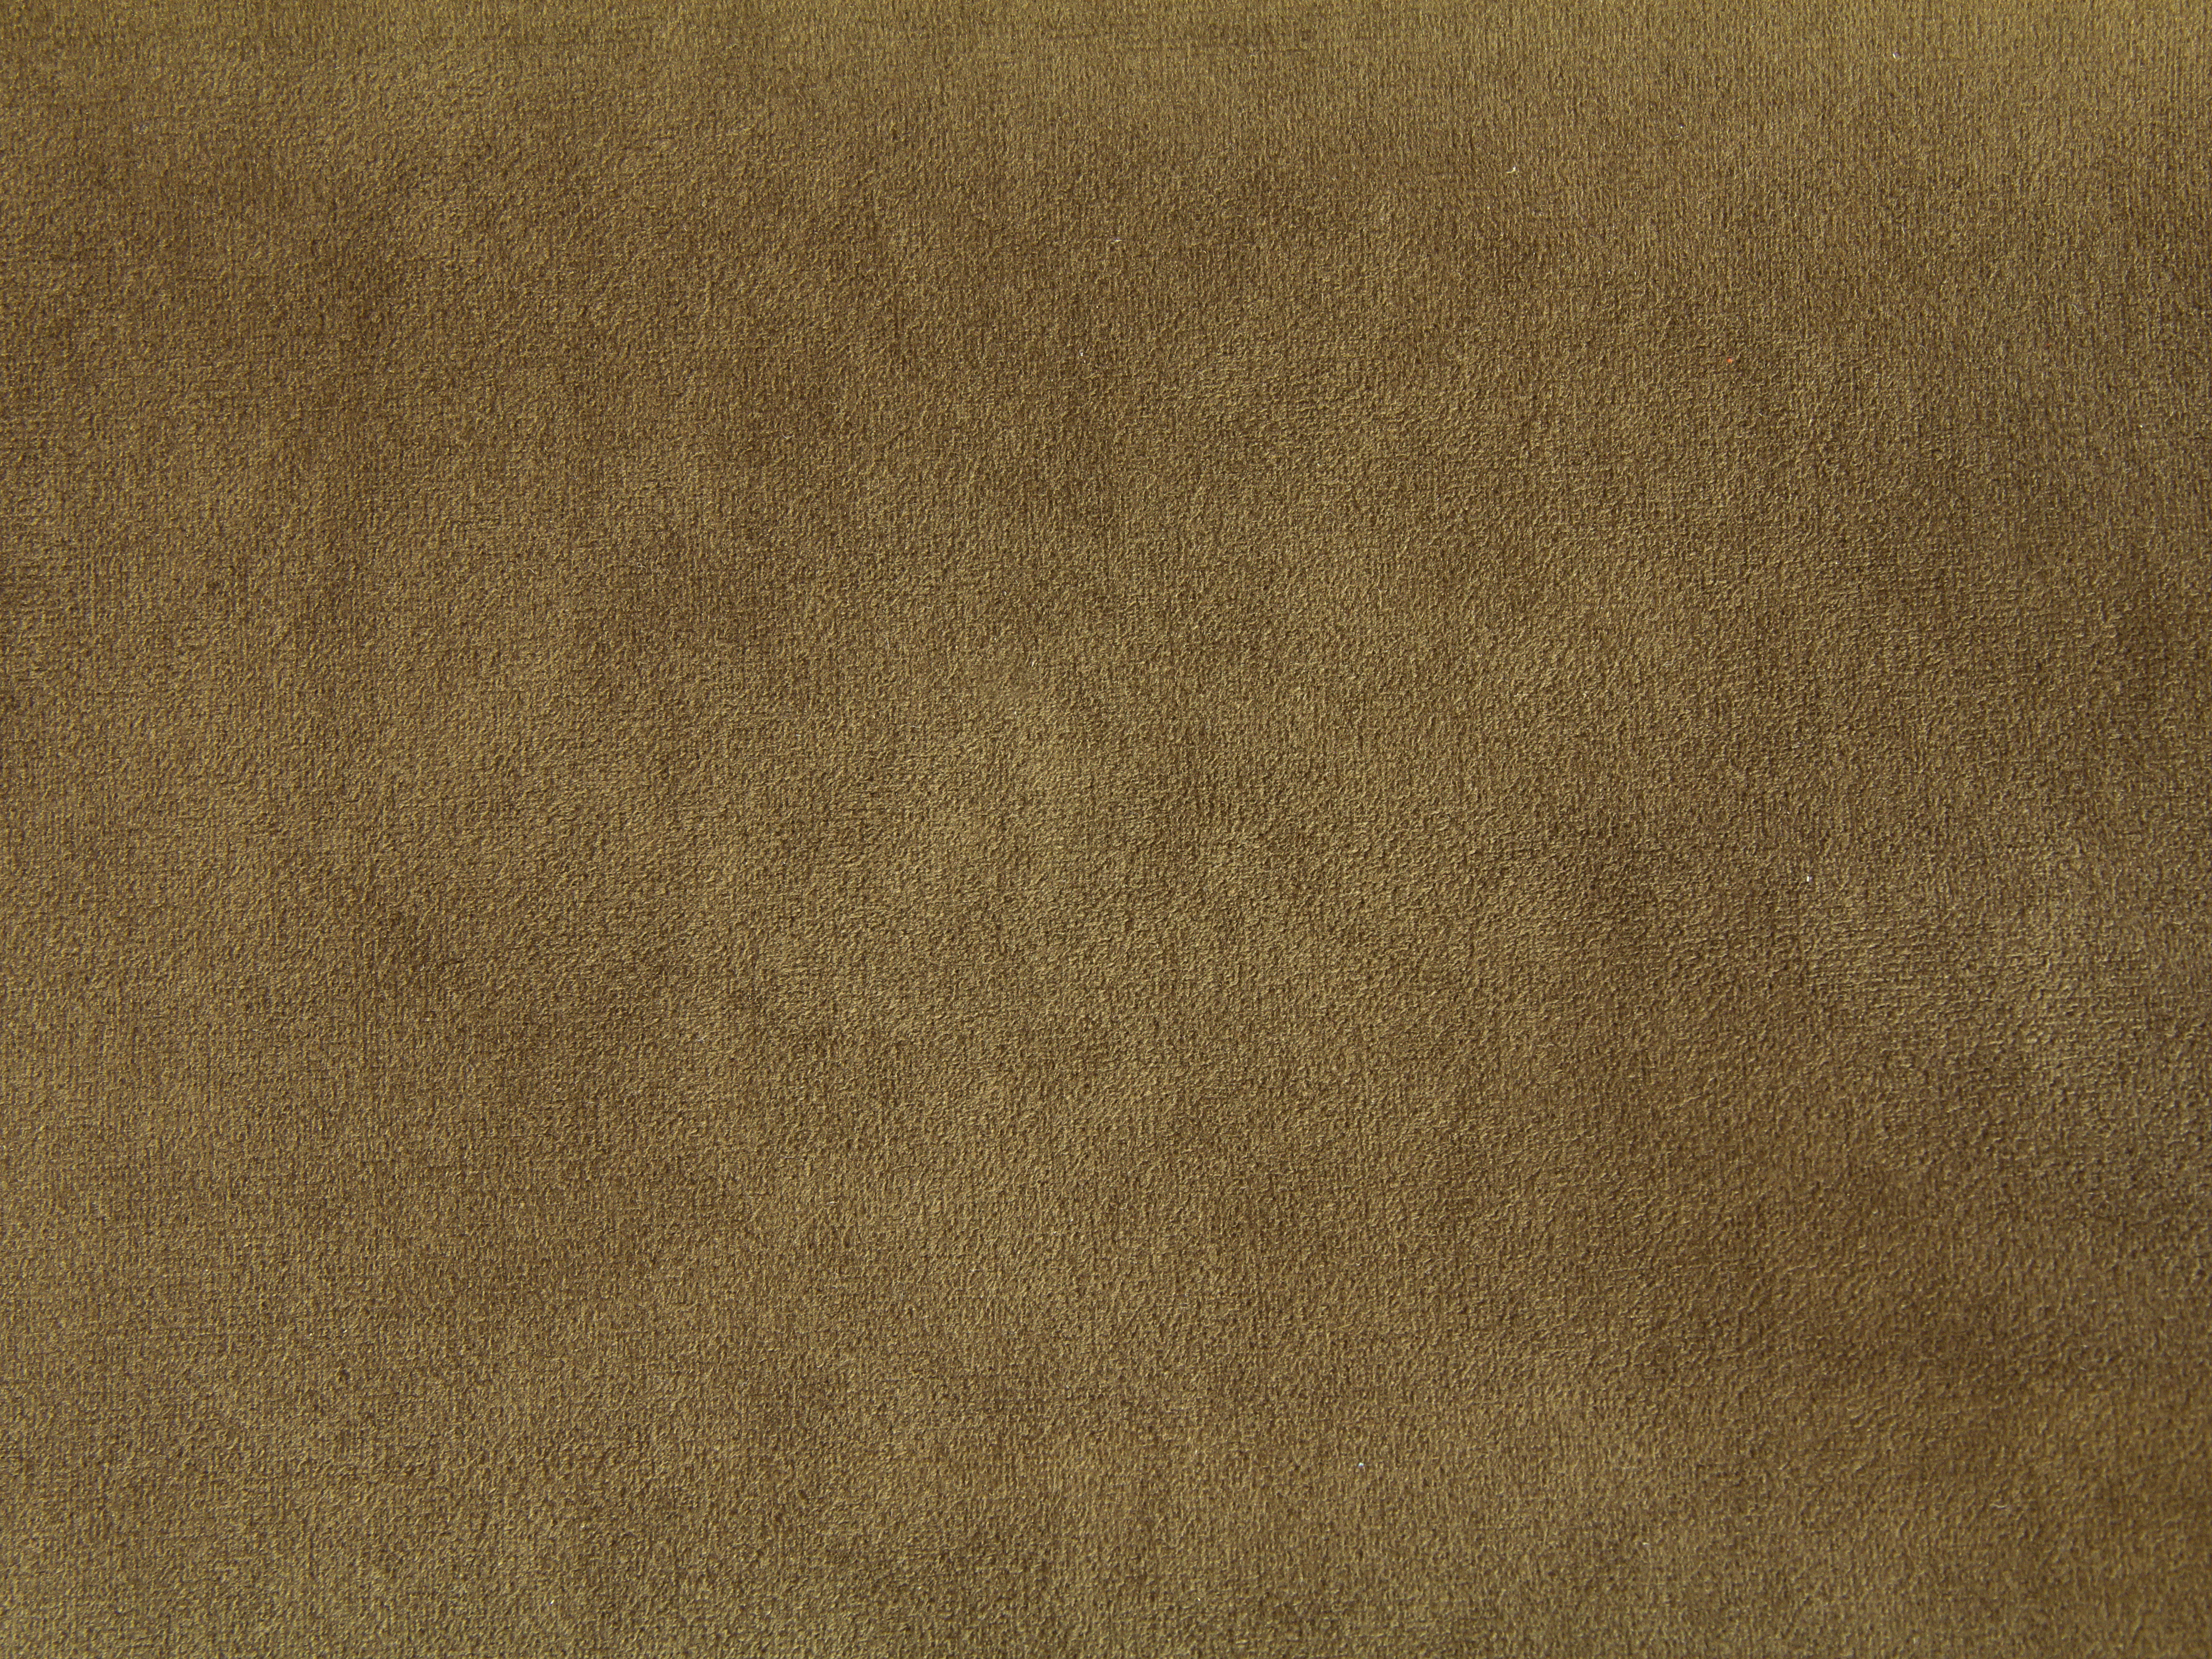 brown fabric fuzzy texture photo soft cloth stock image wallpaper ...